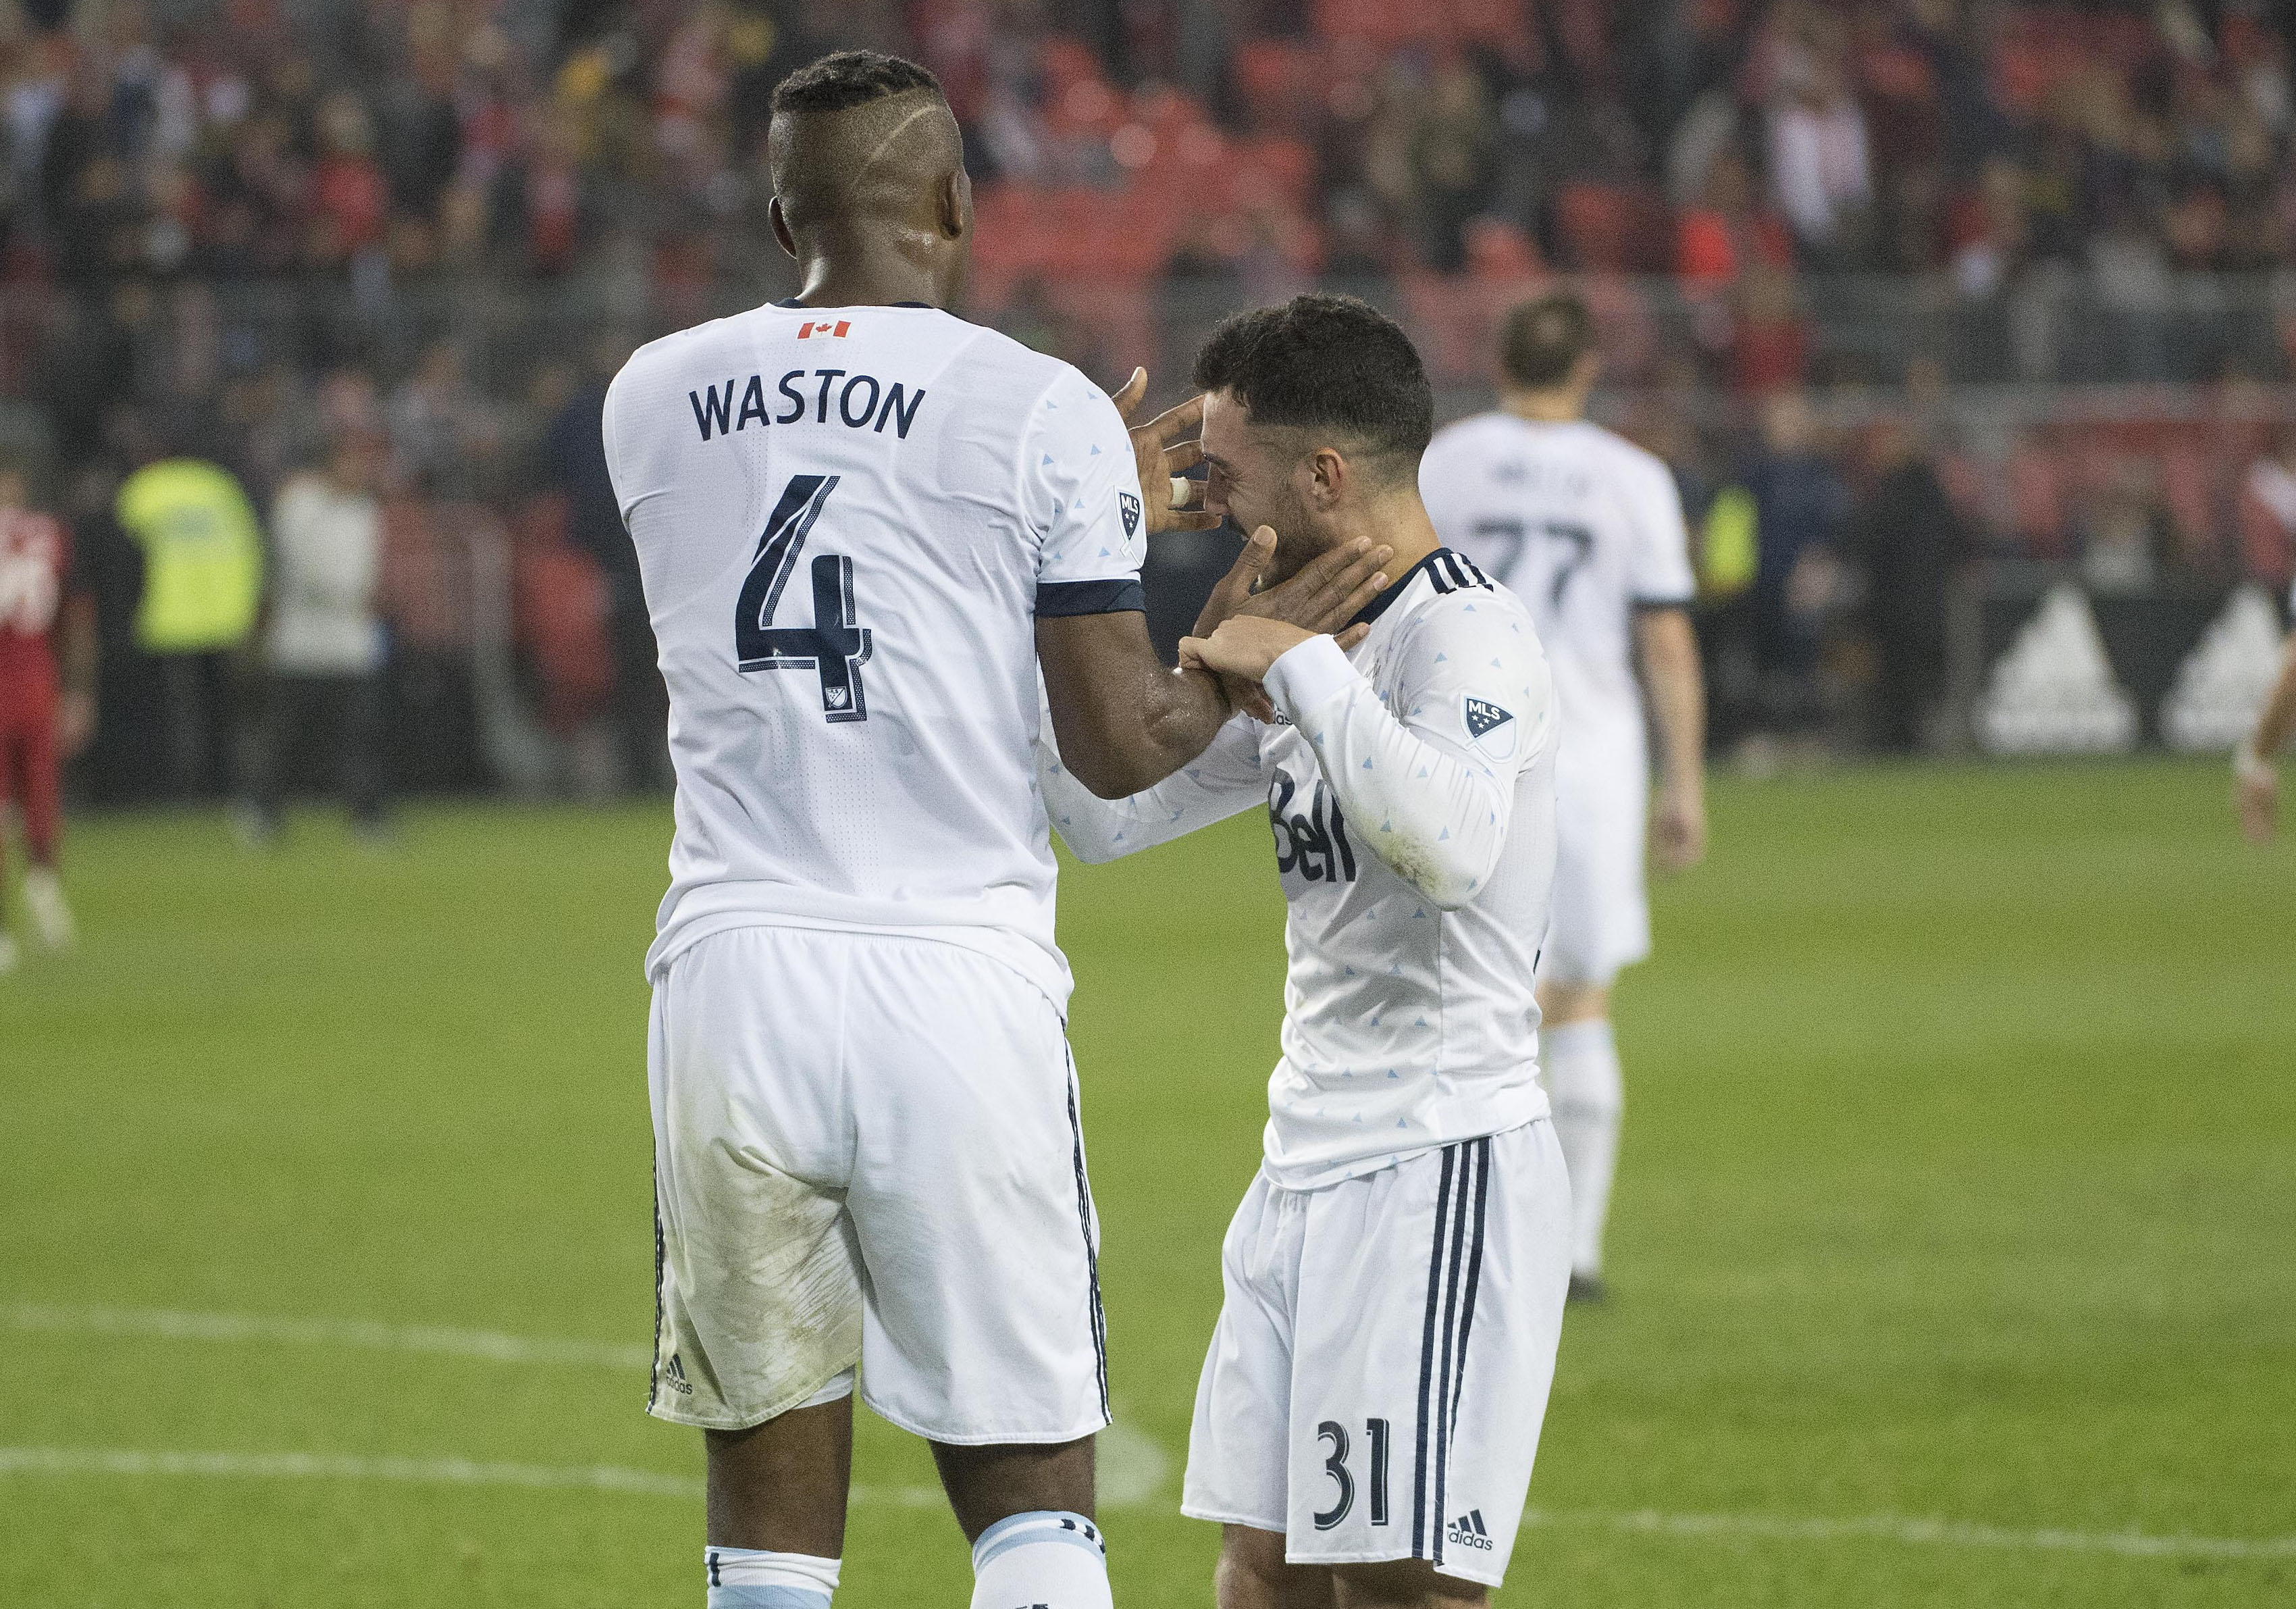 timeless design 92897 7a588 Vancouver Whitecaps and the 2018 MLS Playoffs - Eighty Six ...